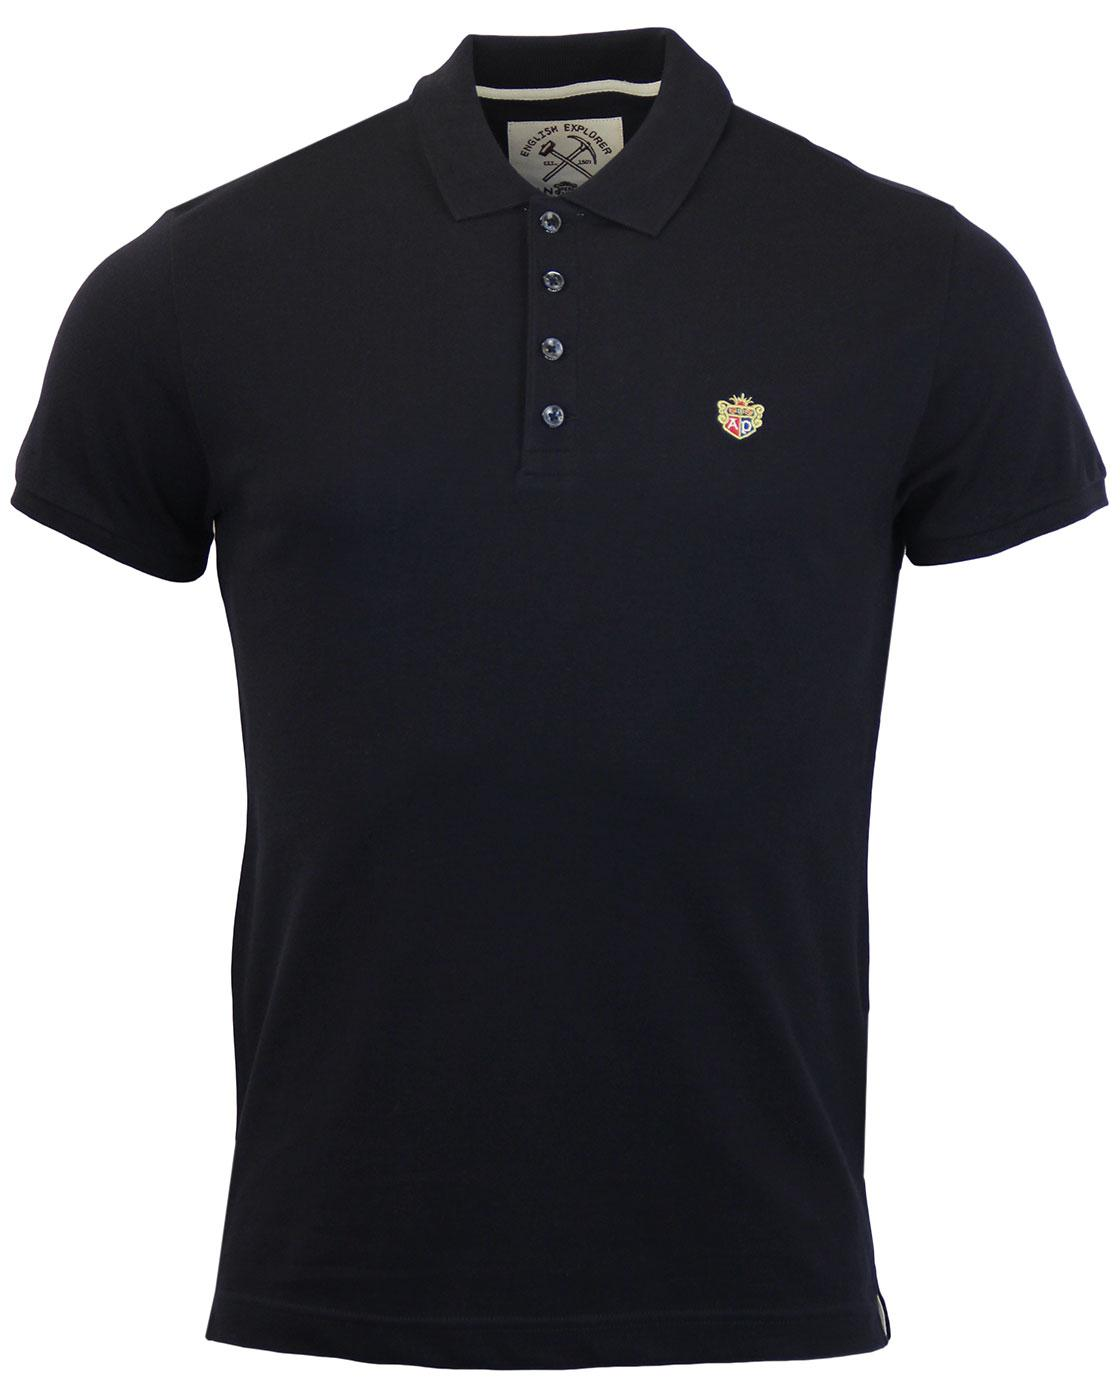 ALAN PAINE Weymouth Retro Mod Crest Logo Polo